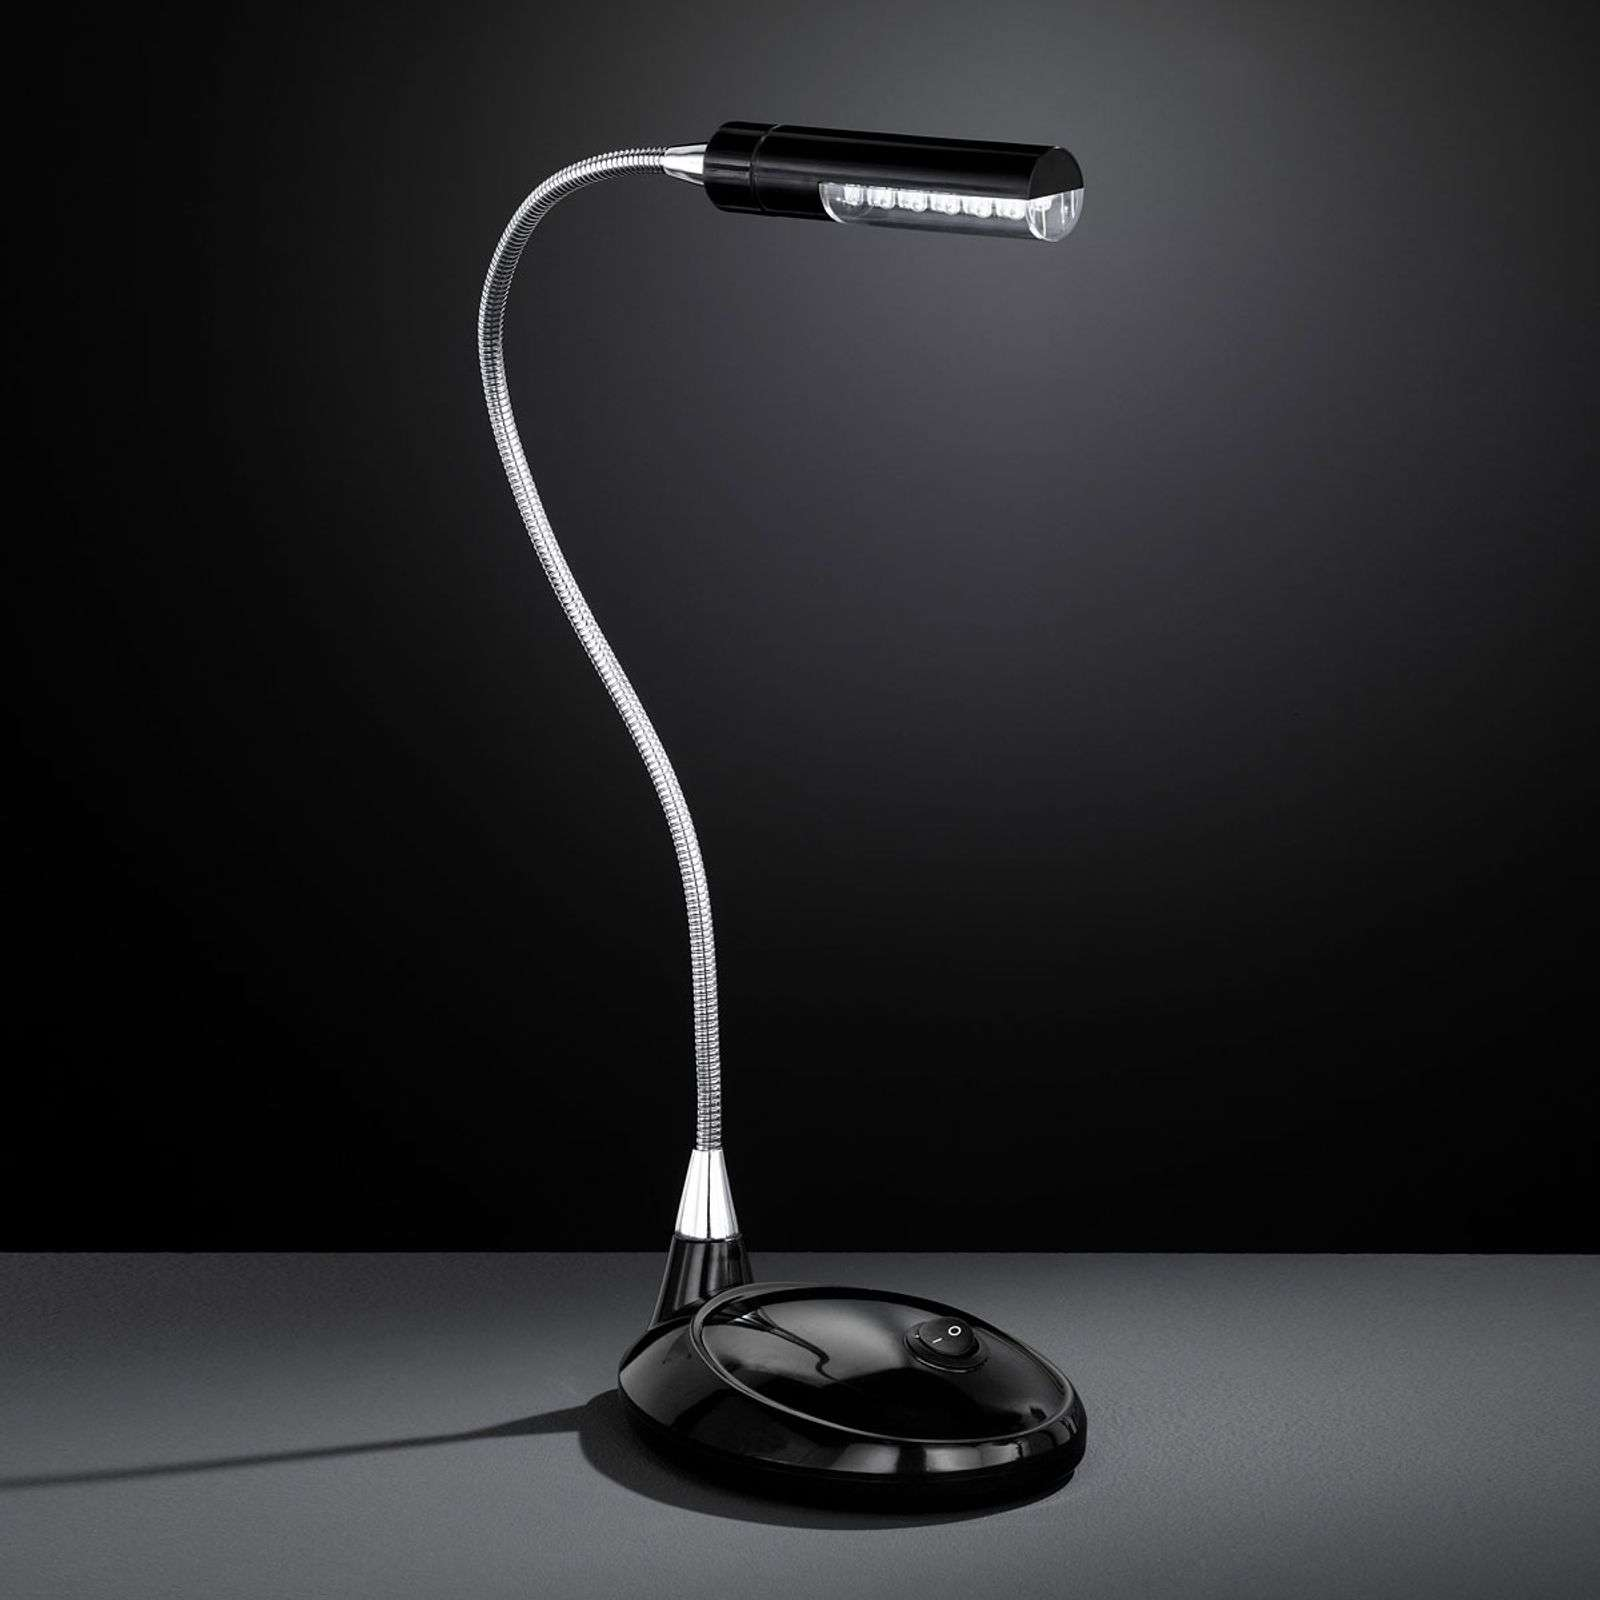 Innovativa lampada scrivania LED FLEX 901 nera